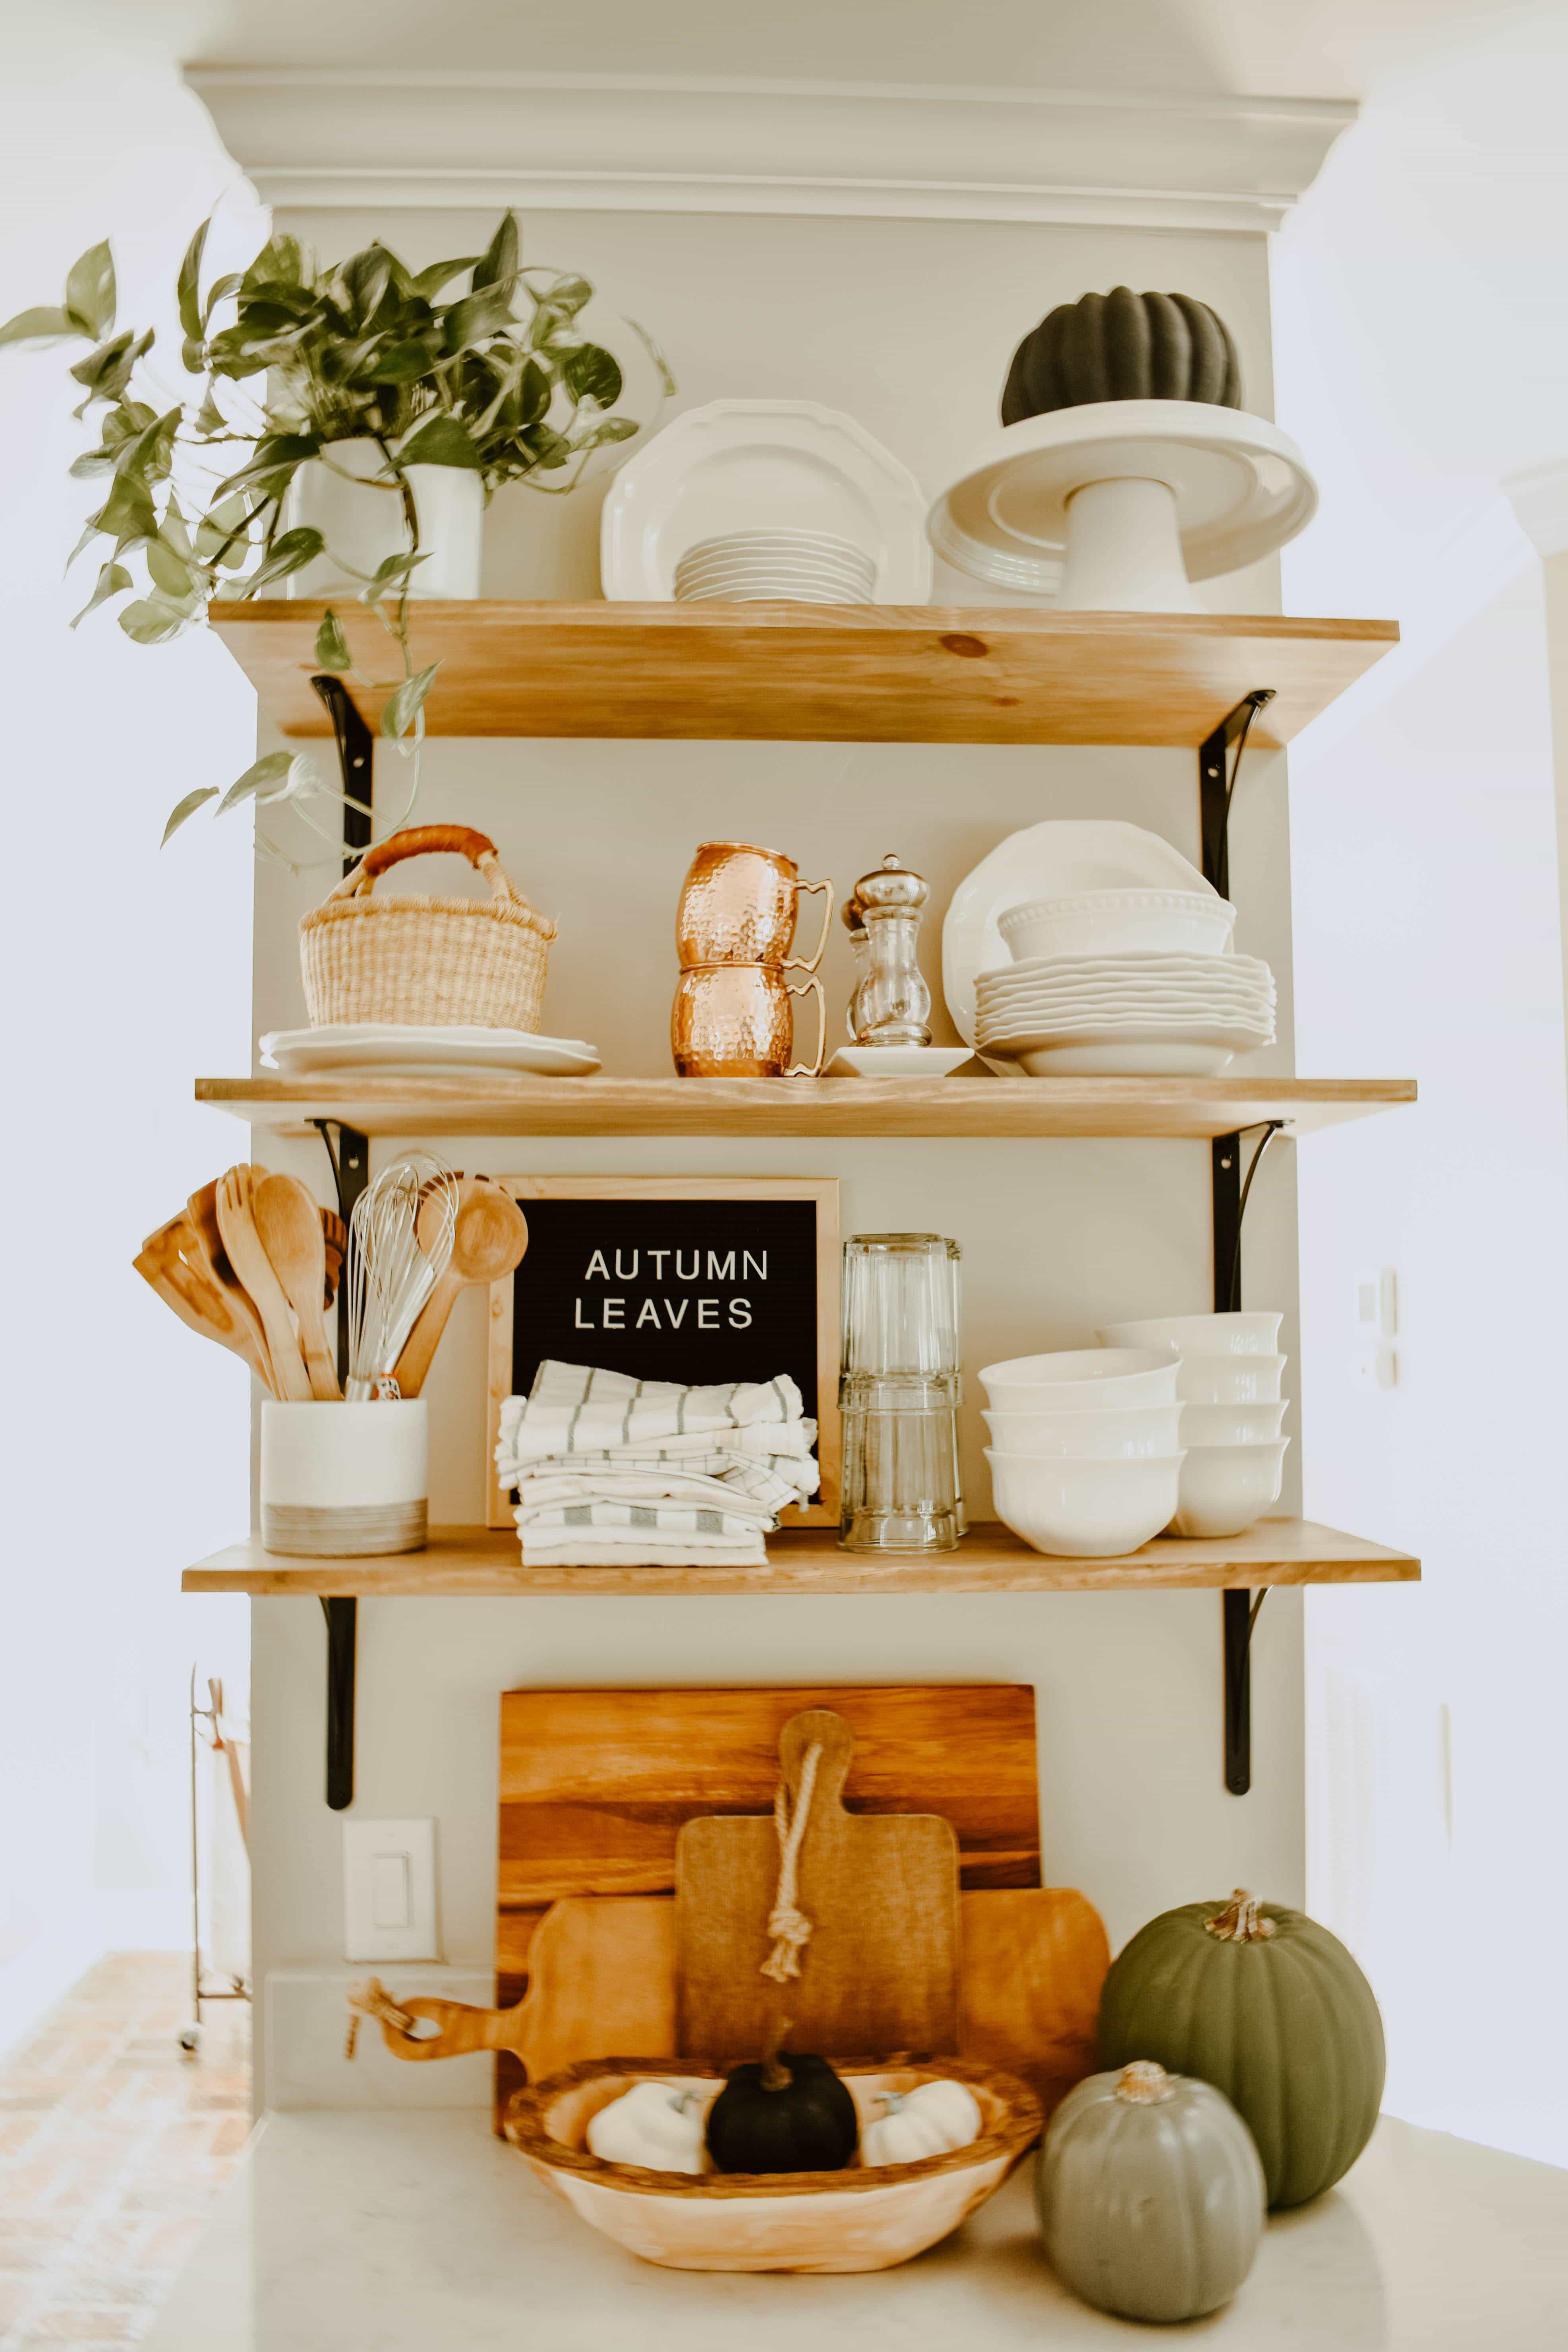 Adventures In Decorating Our Fall Kitchen: Minimalist Fall Kitchen Decor